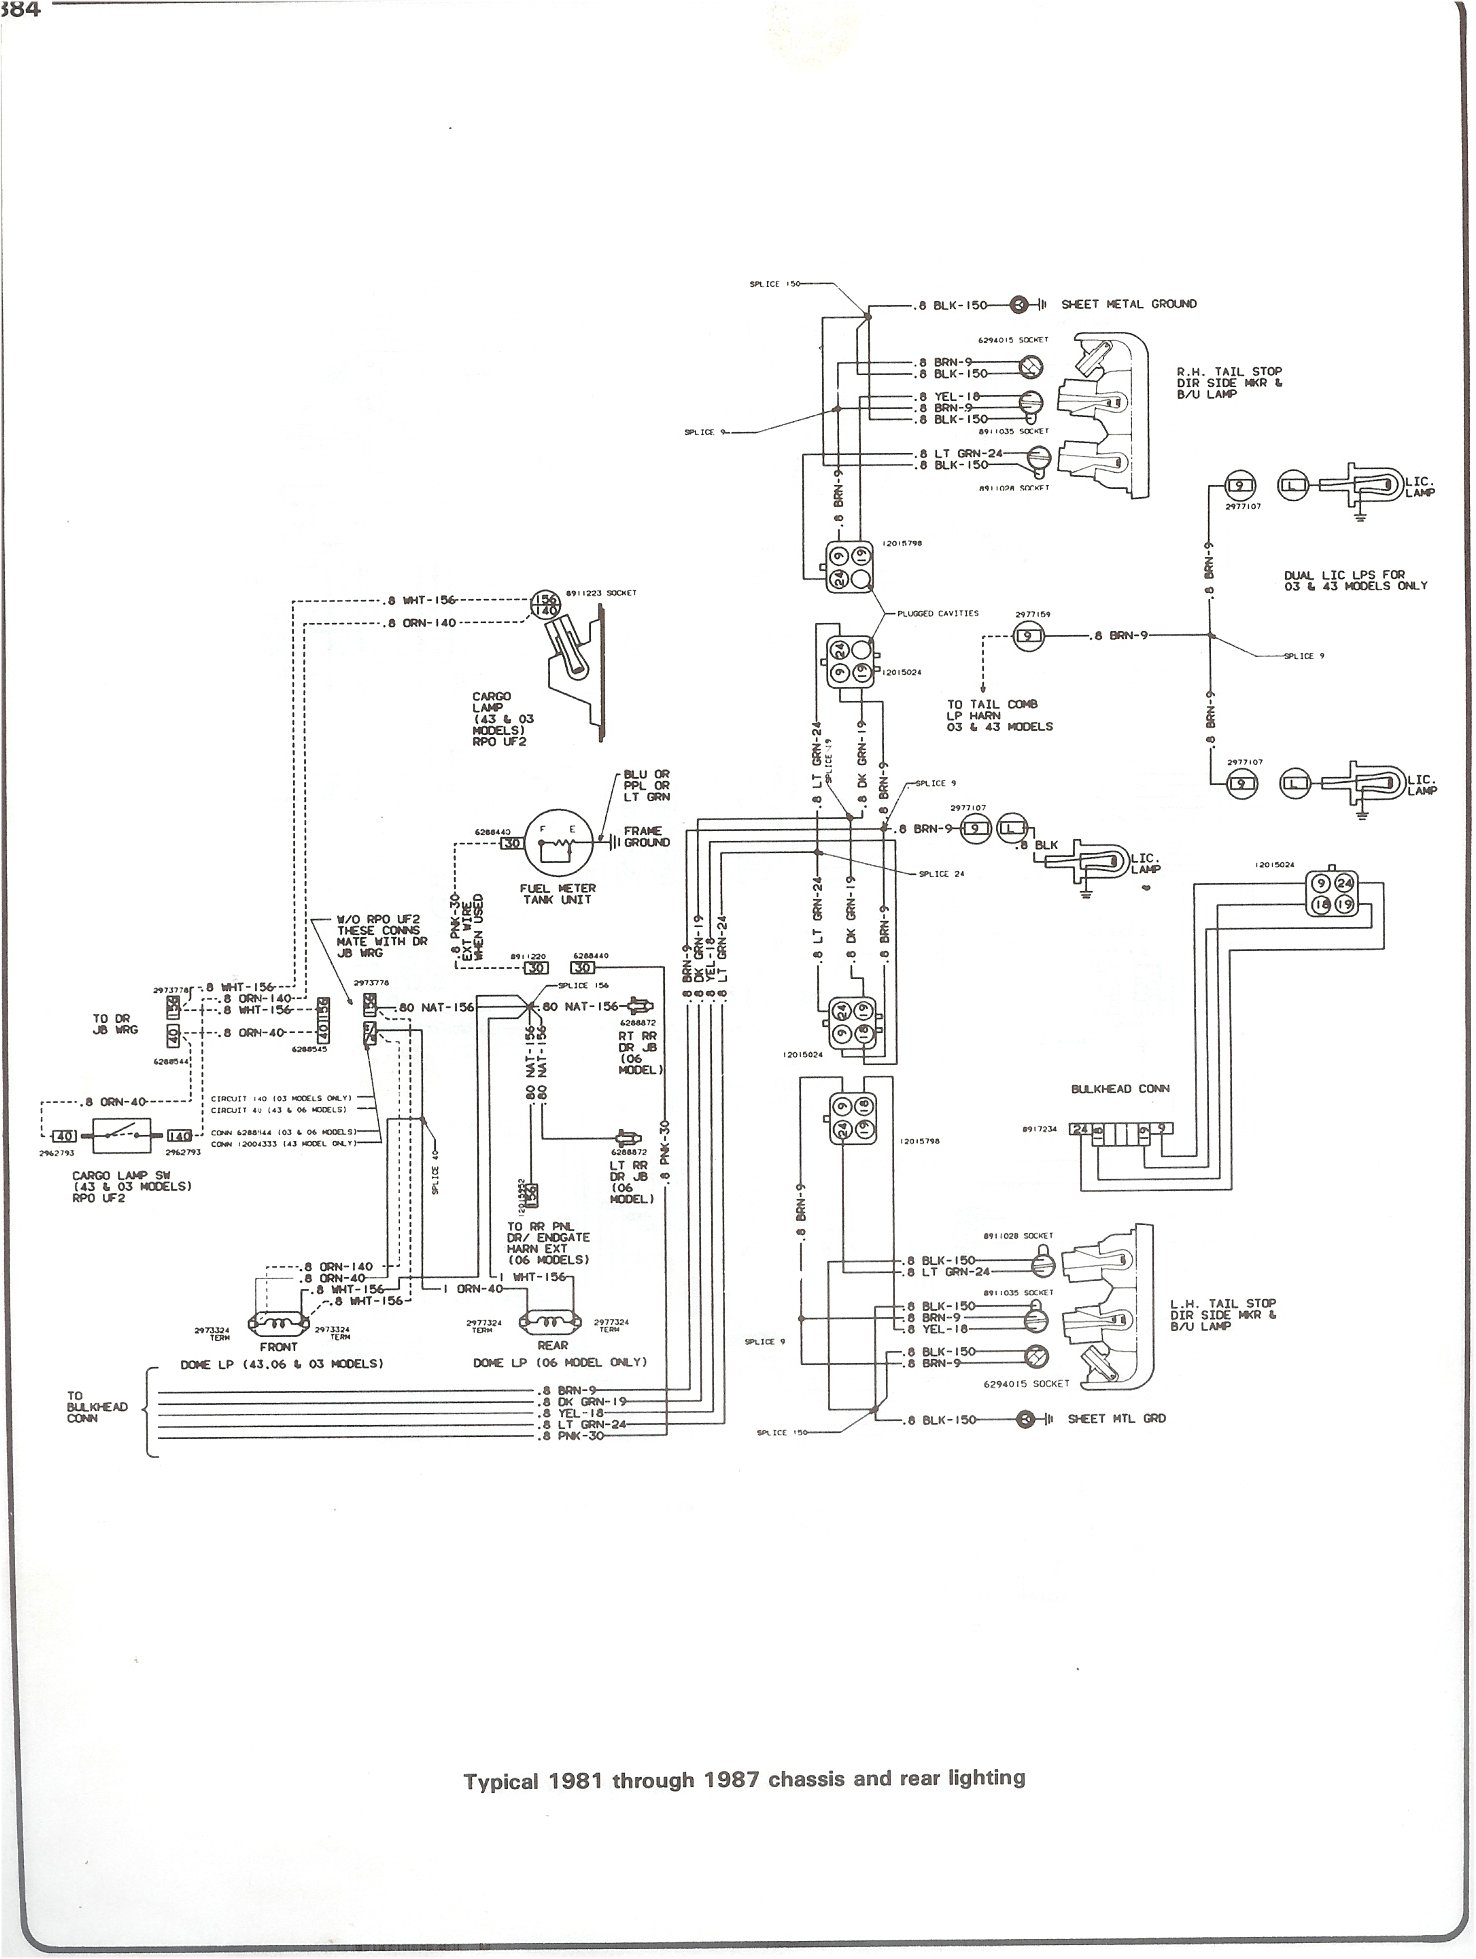 2001 Chevy Silverado Tail Light Wiring Diagram from getdrawings.com